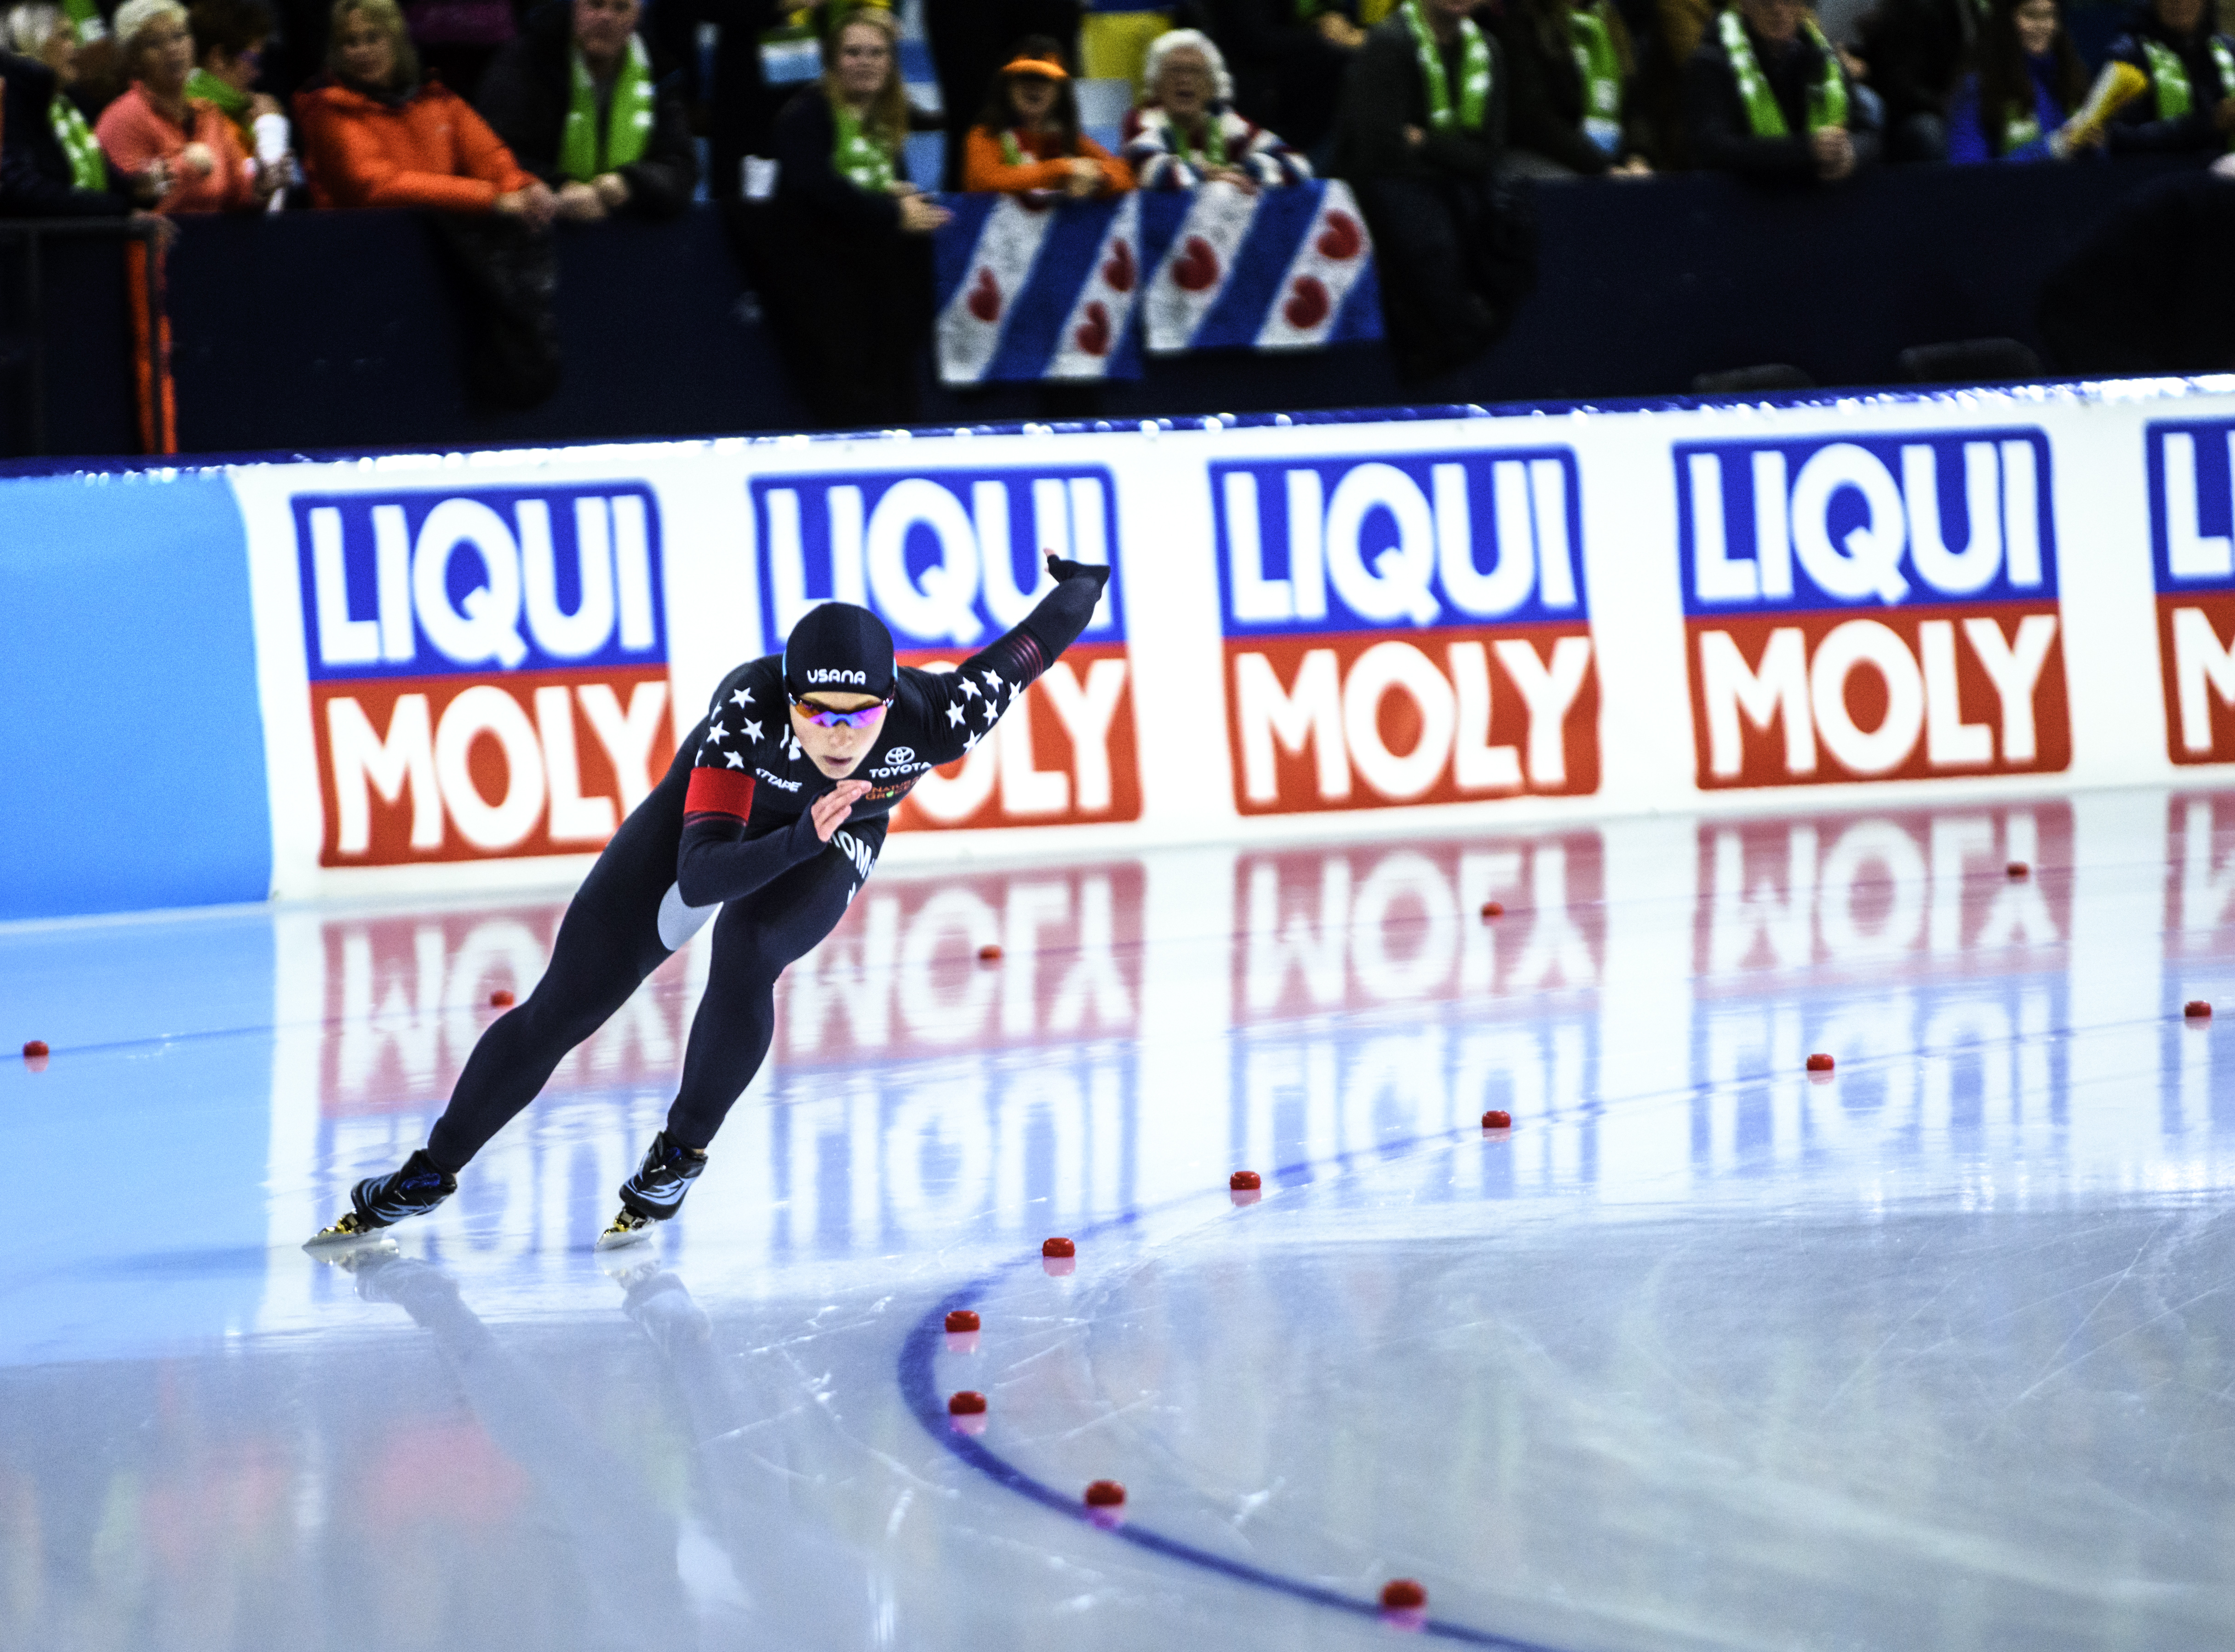 Our involvement in top sports: LIQUI MOLY